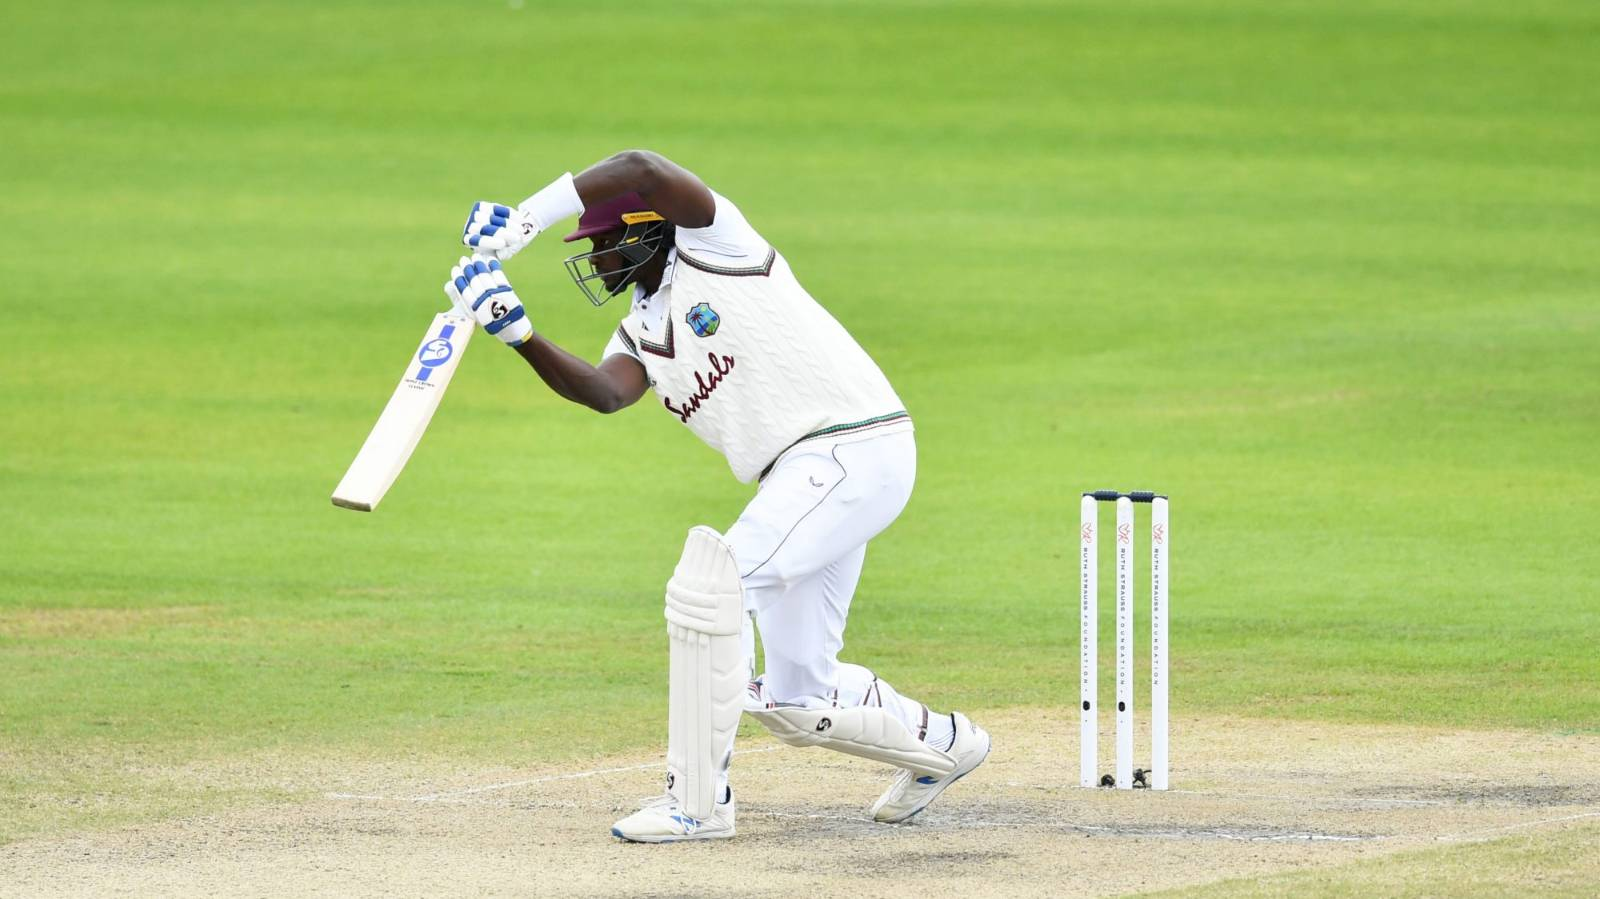 West Indies out to break winless test run in NZ